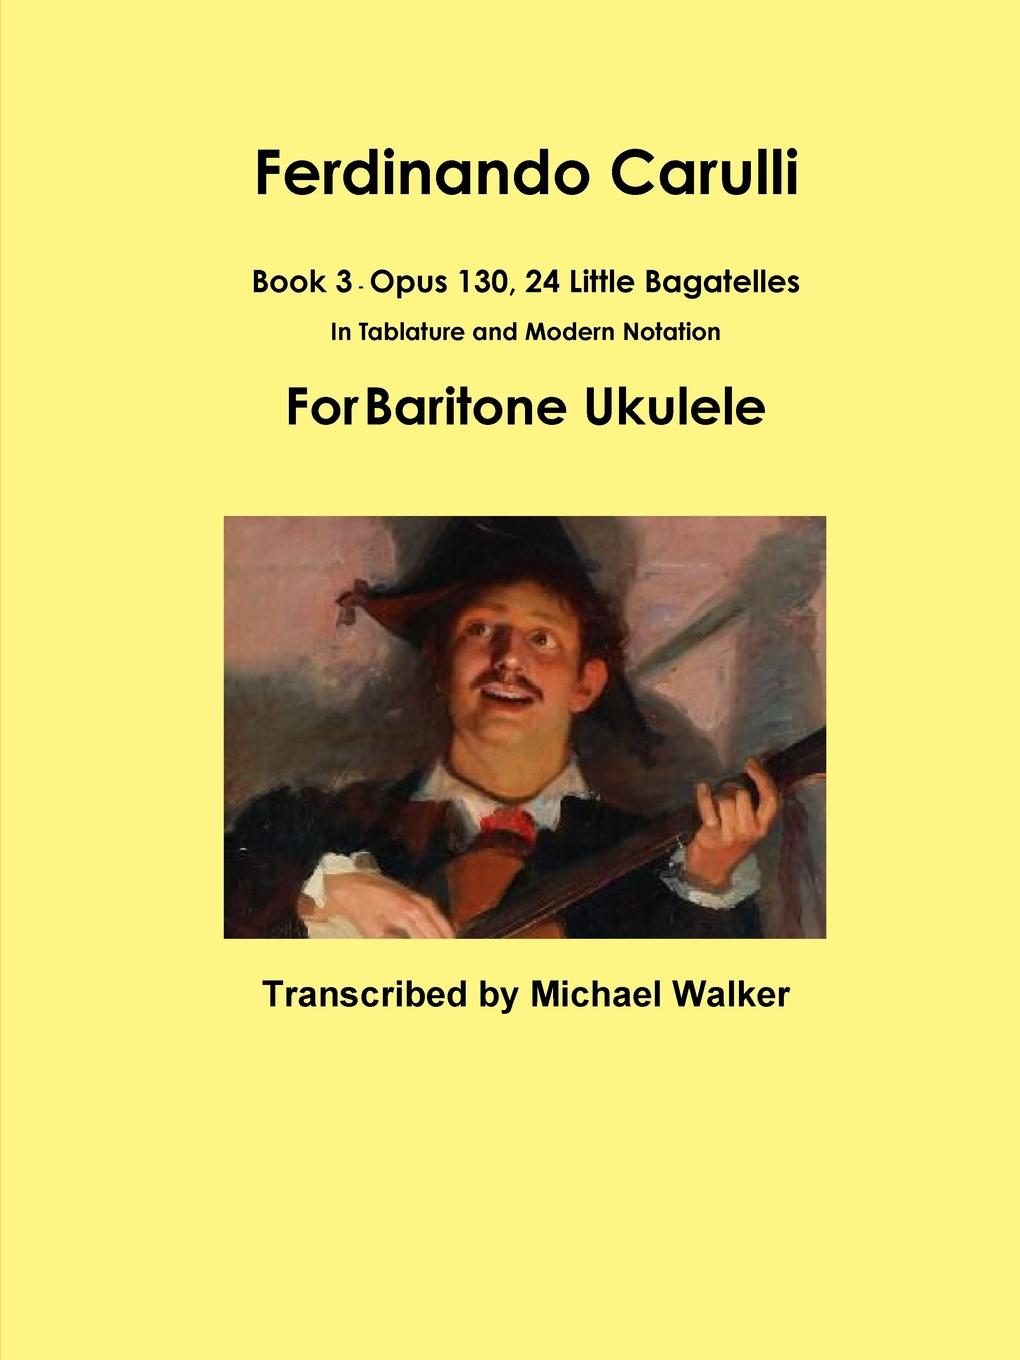 Michael Walker Ferdinando Carulli Book 3 Opus 130, 24 Little Bagatelles In Tablature and Modern Notation For Baritone Ukulele